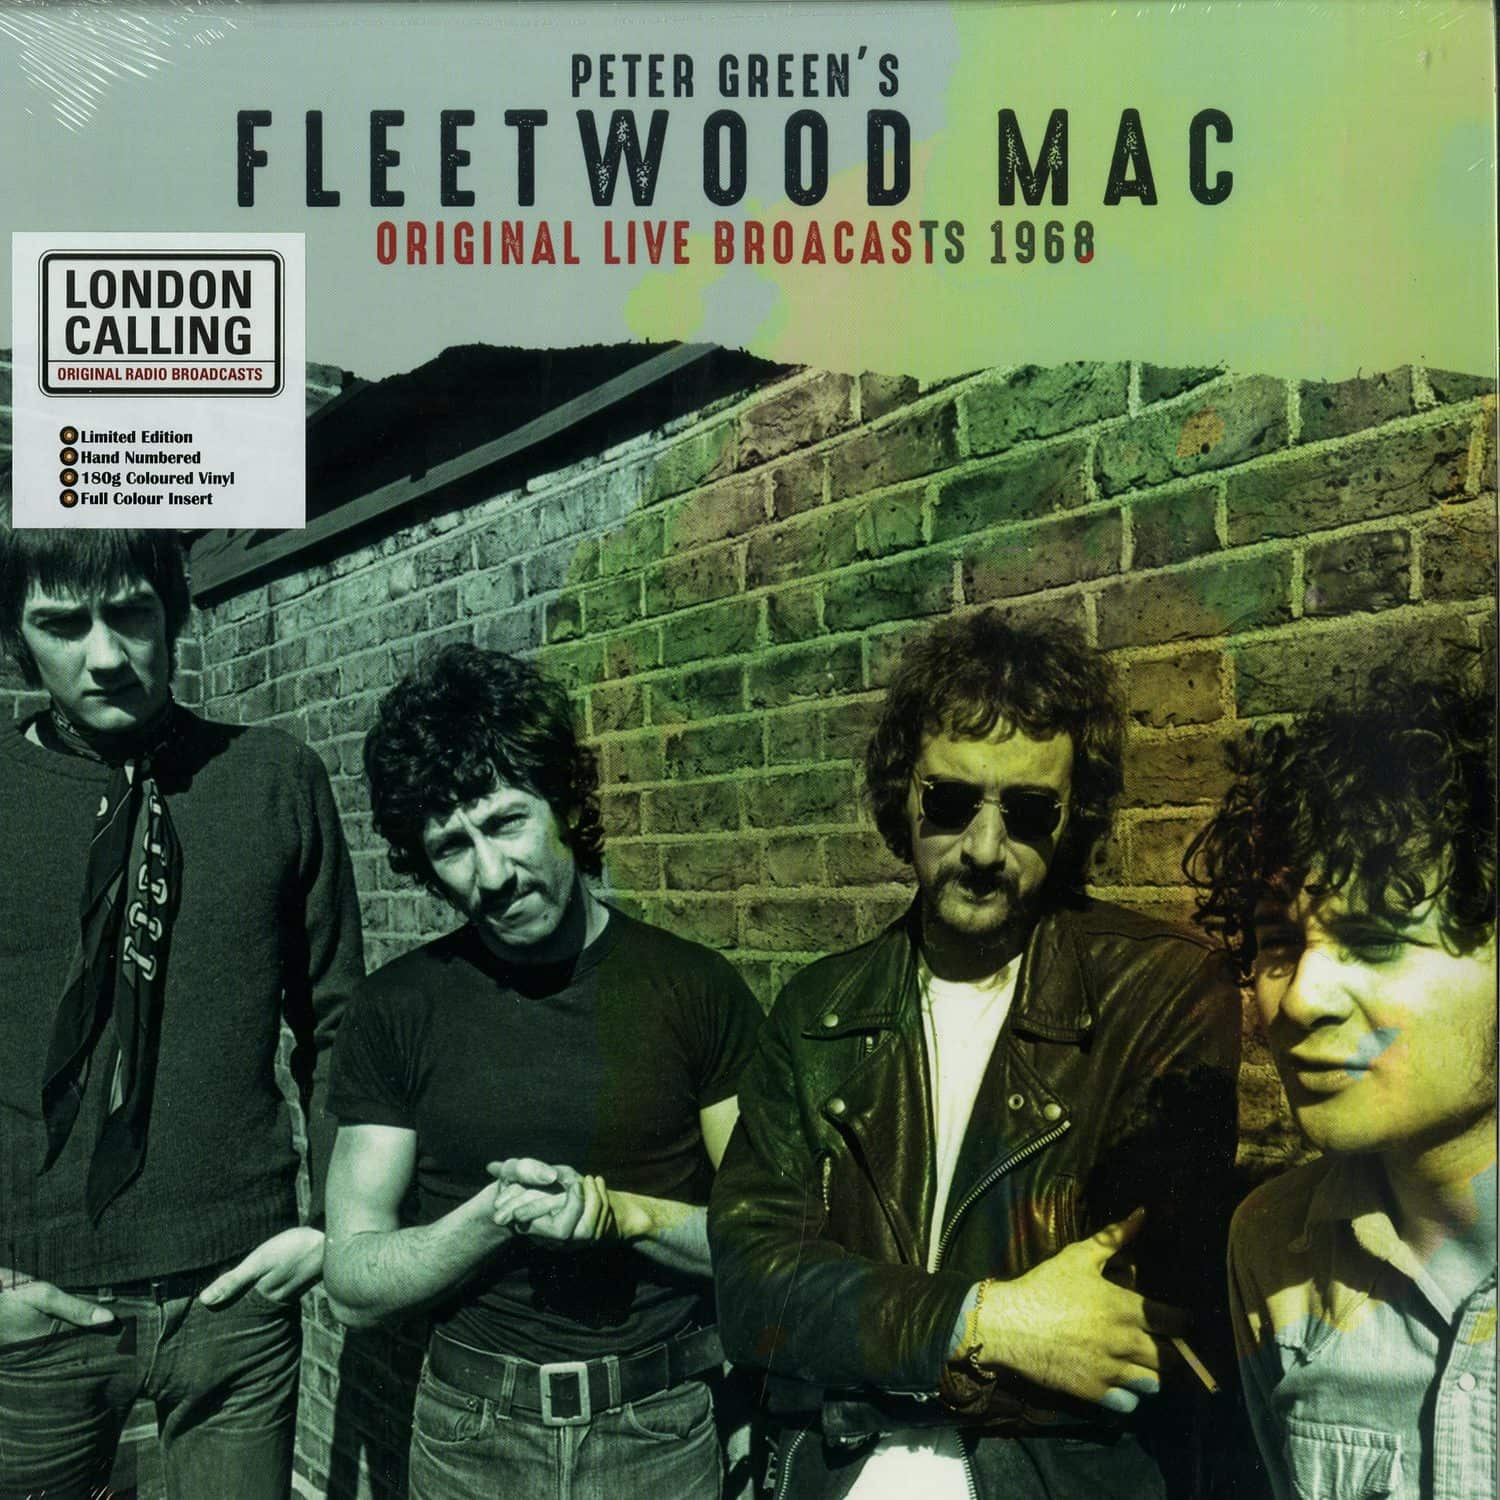 Fleetwood Mac - ORIGINAL LIVE BROADCASTS 1968